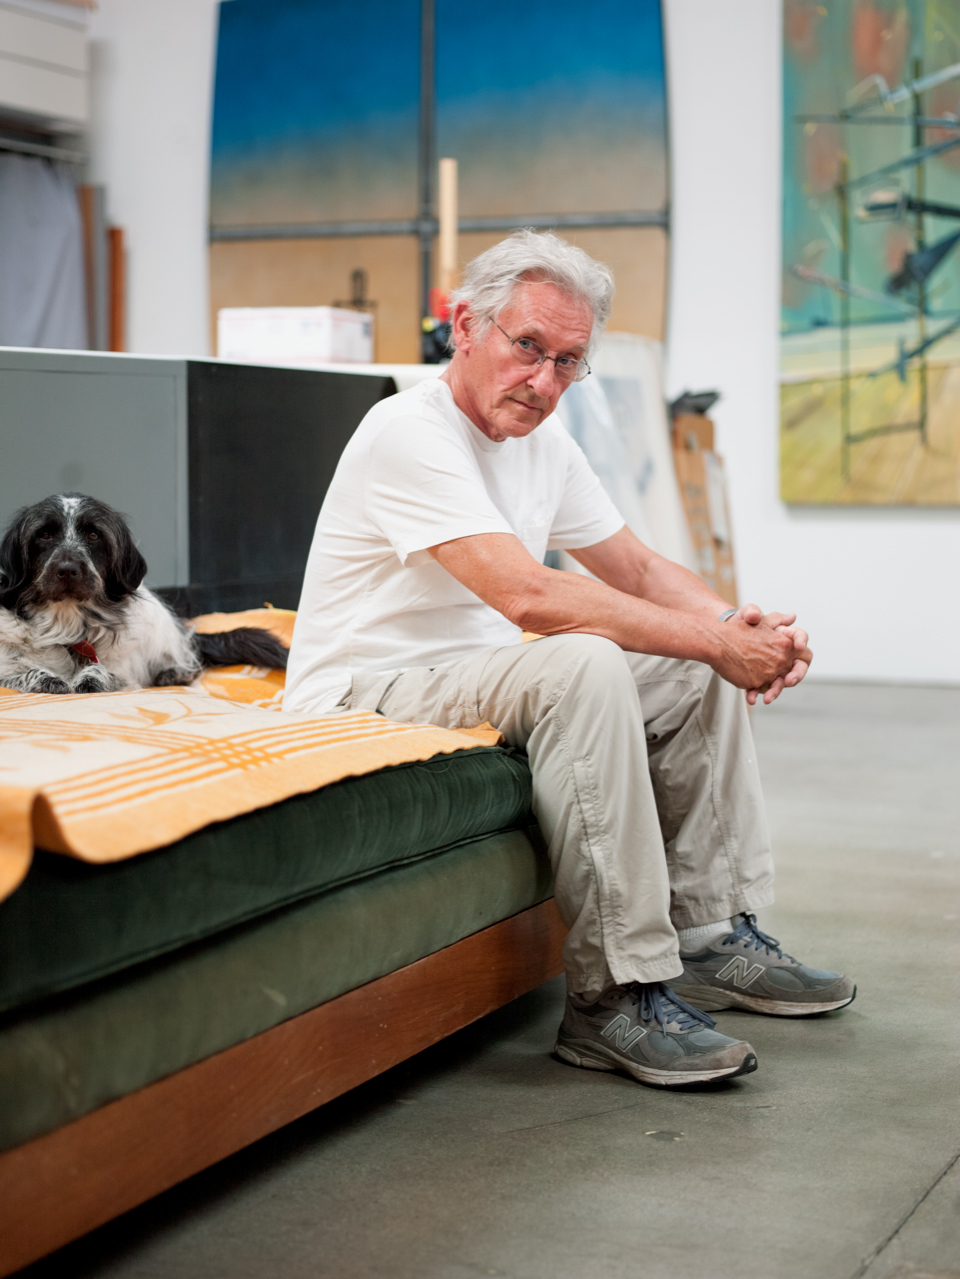 A figure in a white T-shirt and khaki pants and a dog sit on a couch in an art studiosits